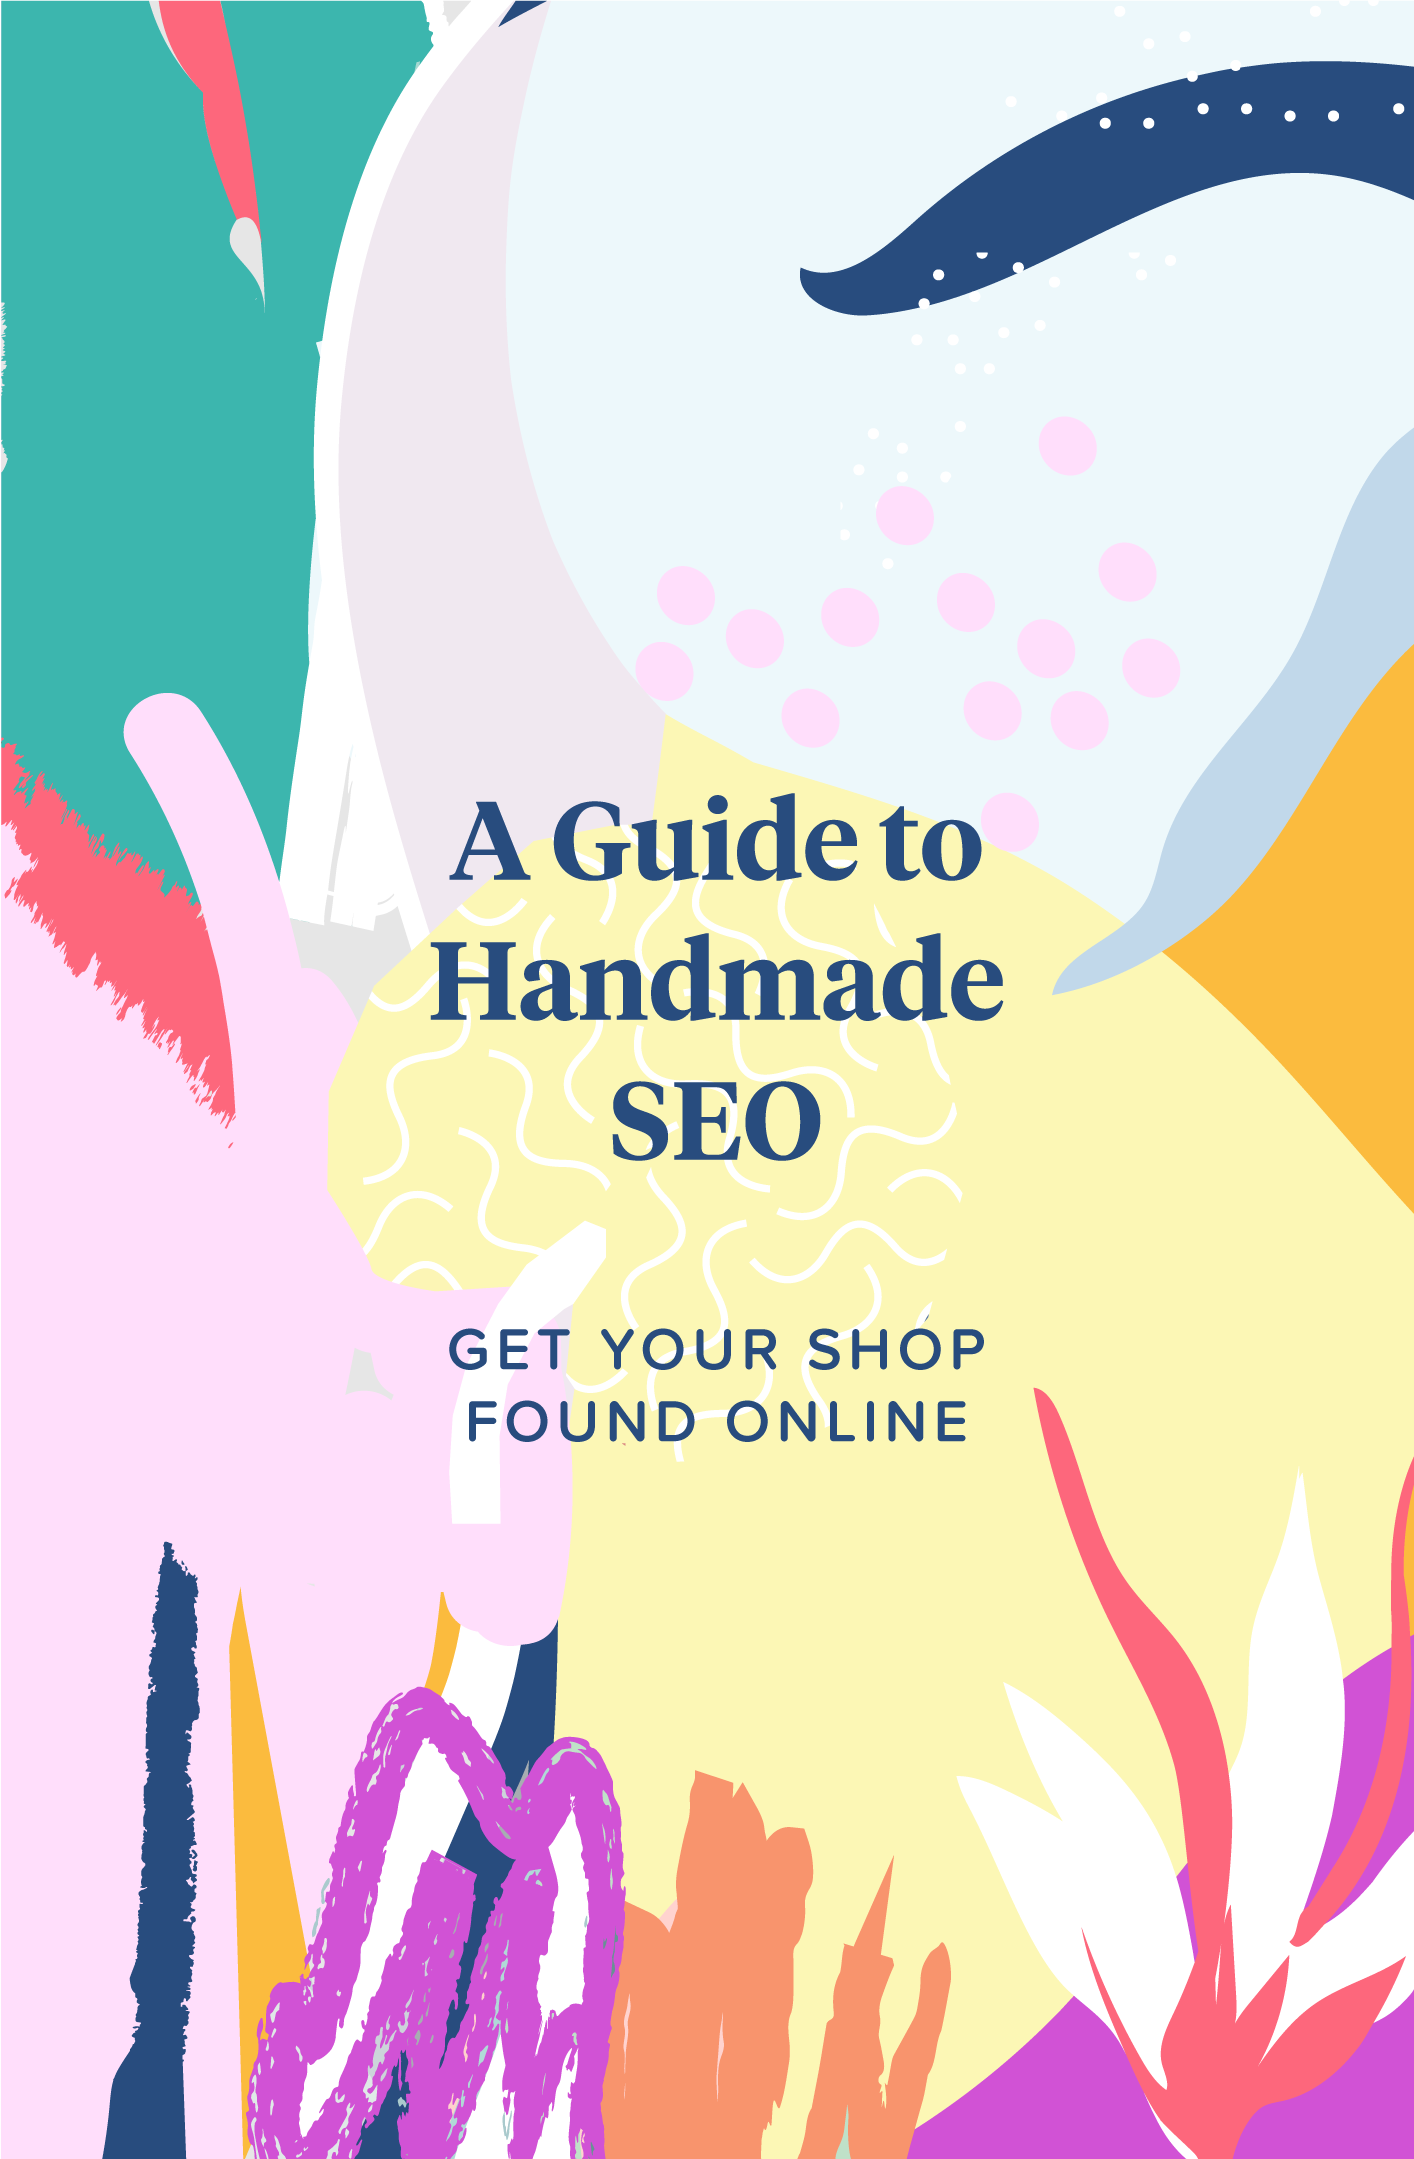 Handmade Seo A Guide To Get Your Shop Found Online By